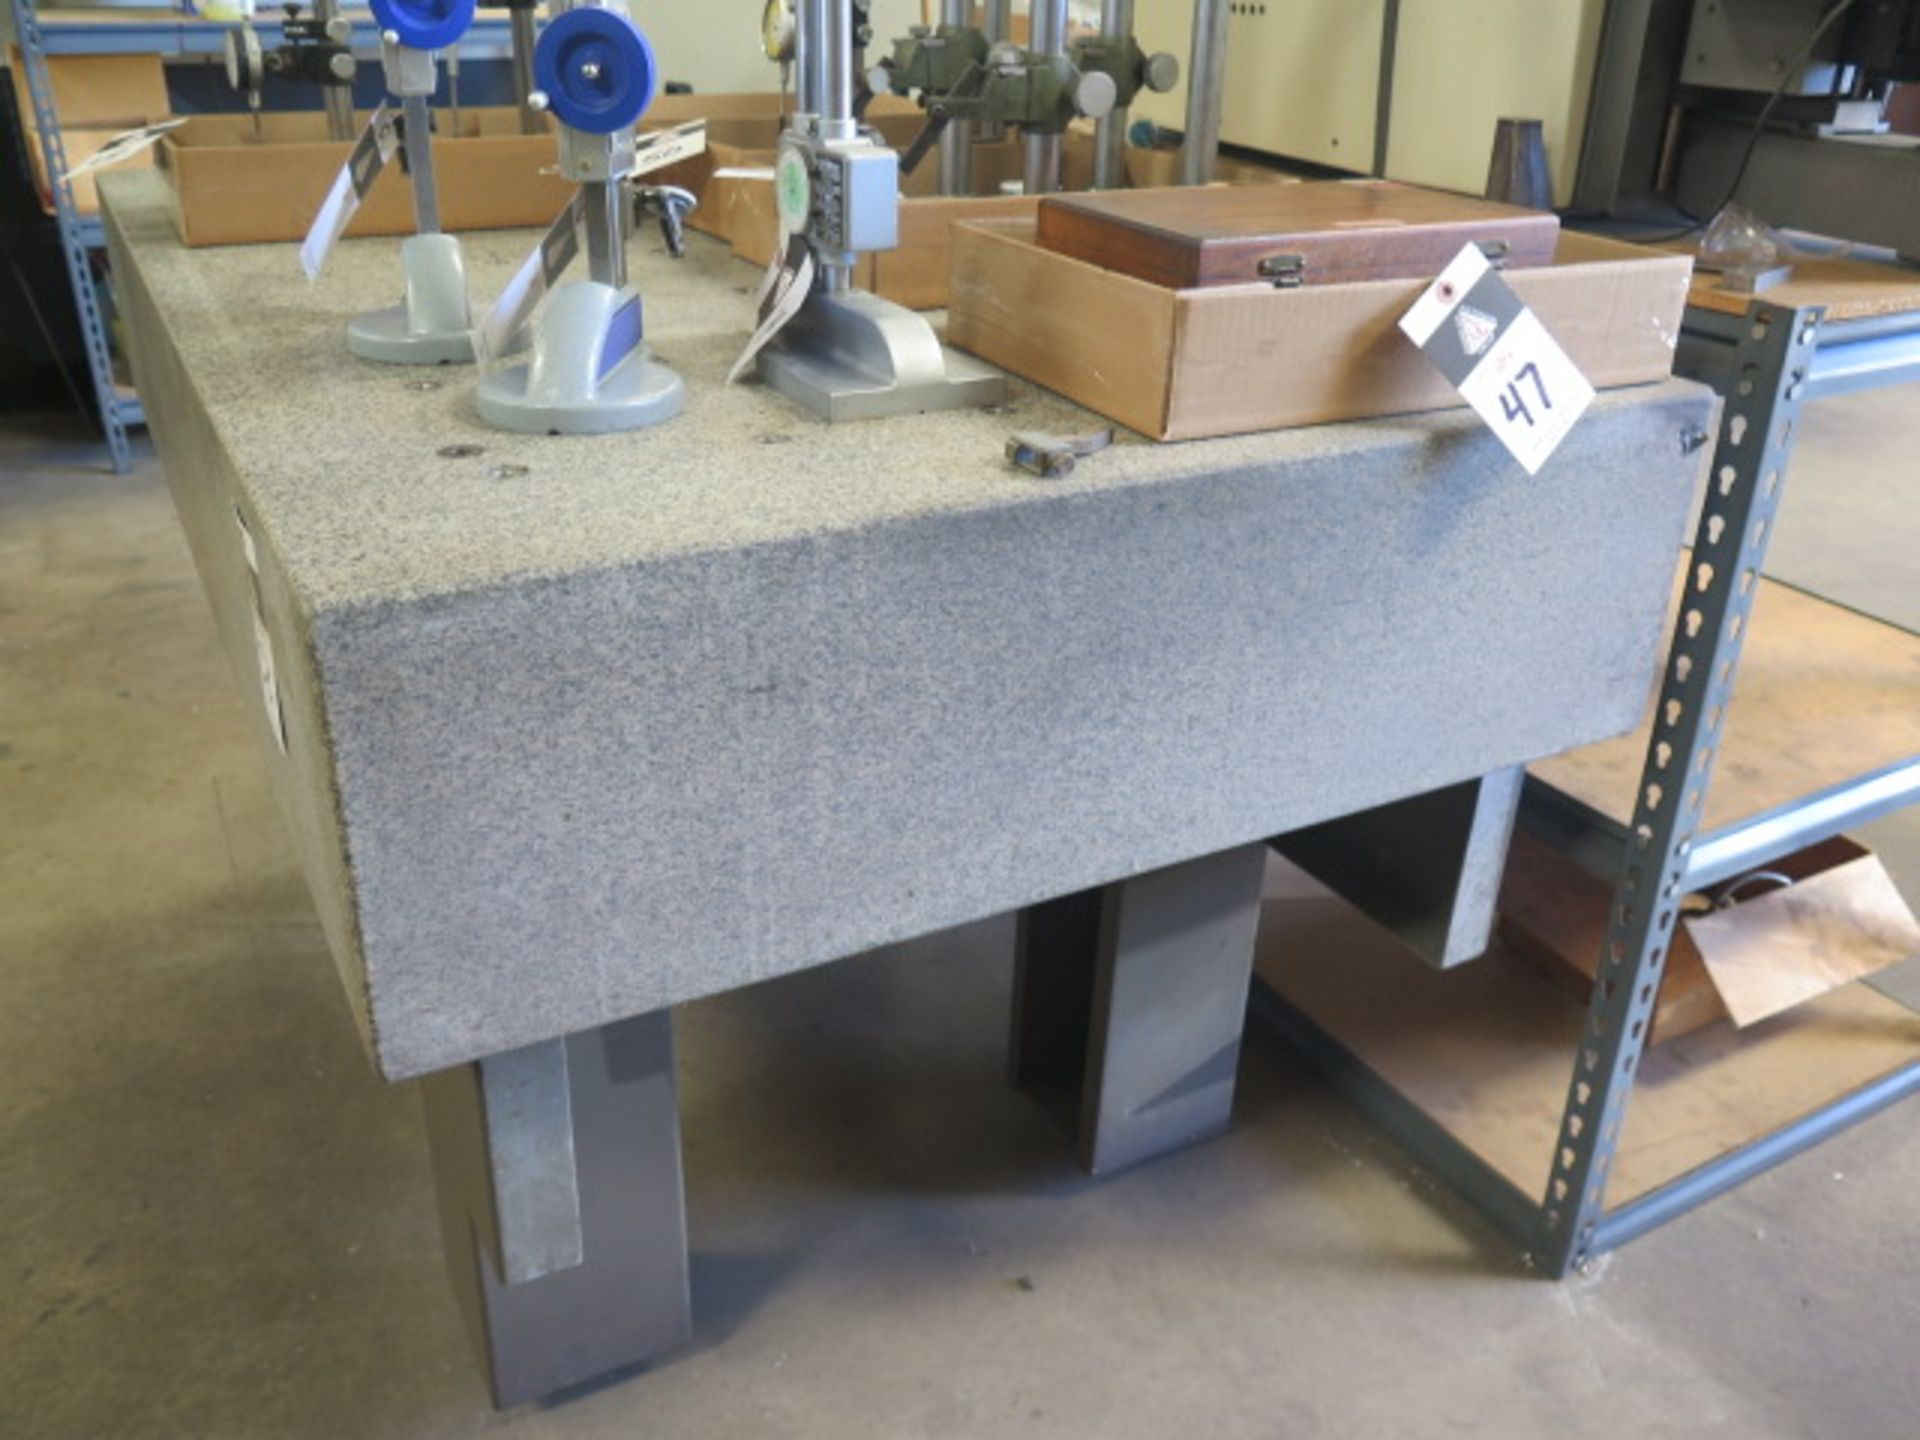 """36"""" x 60"""" x 10"""" Granite Surface Plate w/ Stand (SOLD AS-IS - NO WARRANTY) - Image 2 of 5"""